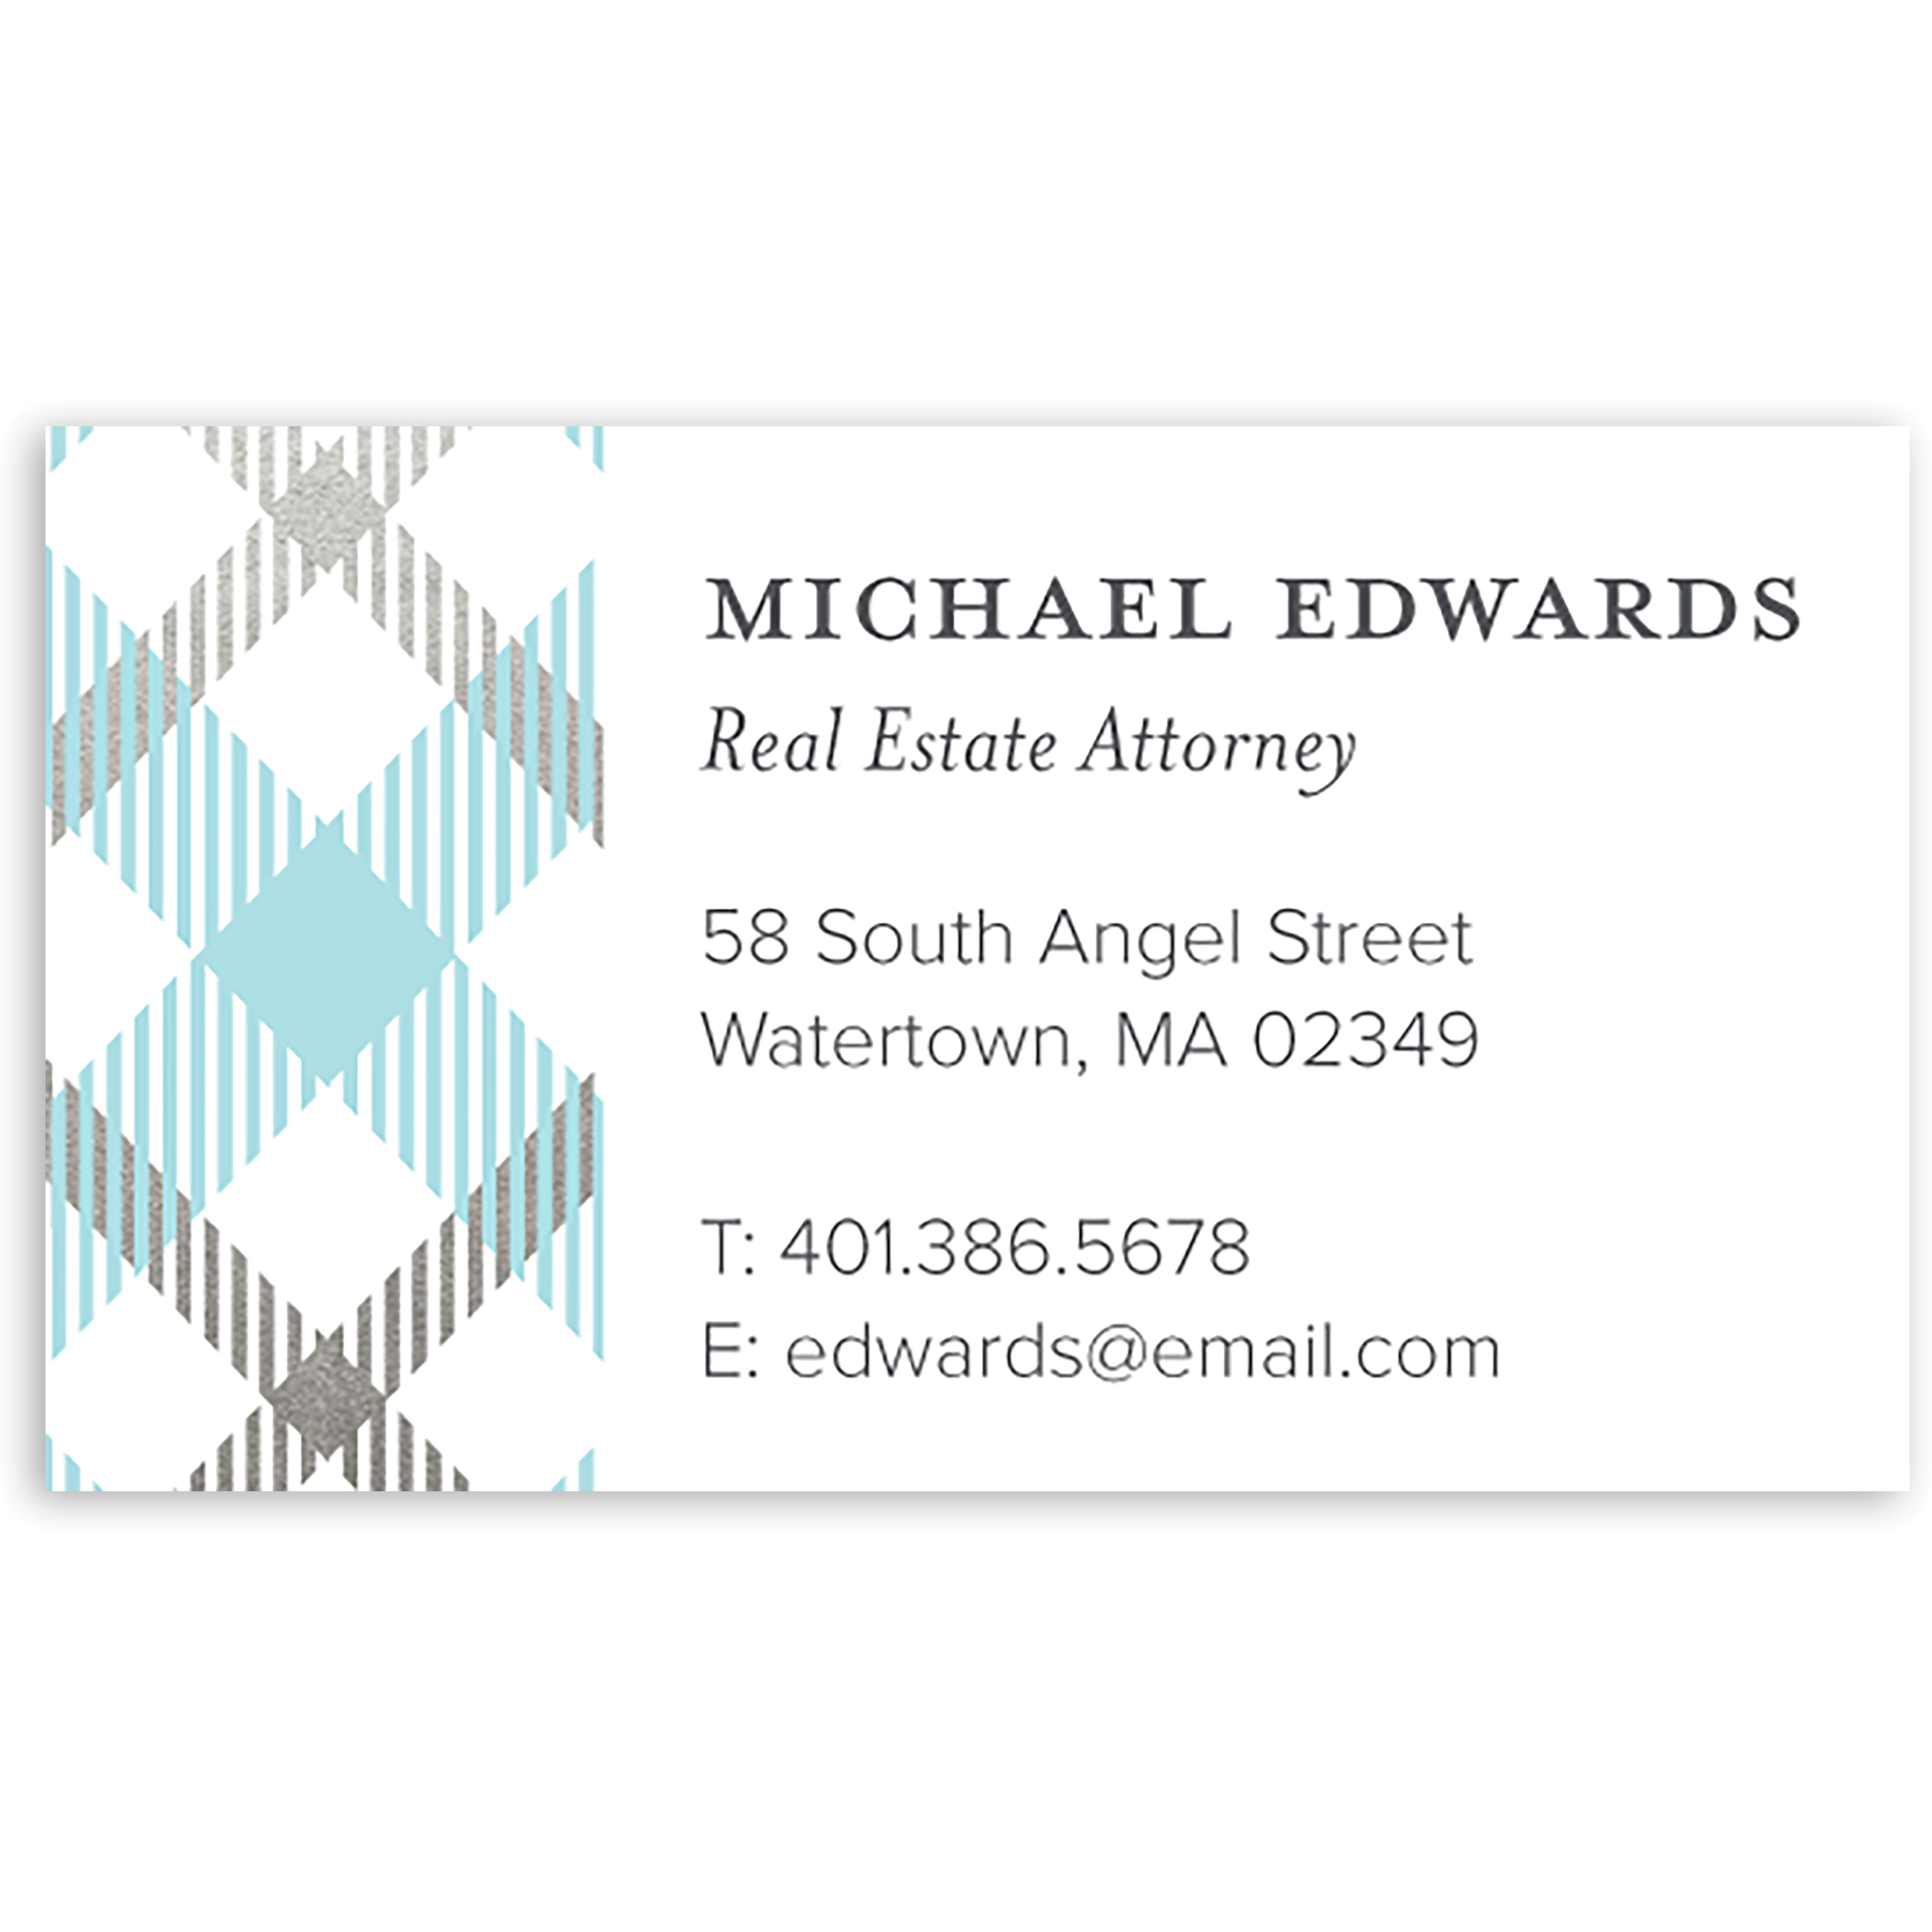 Plaid - Personalized 3.5 x 2 Business Card